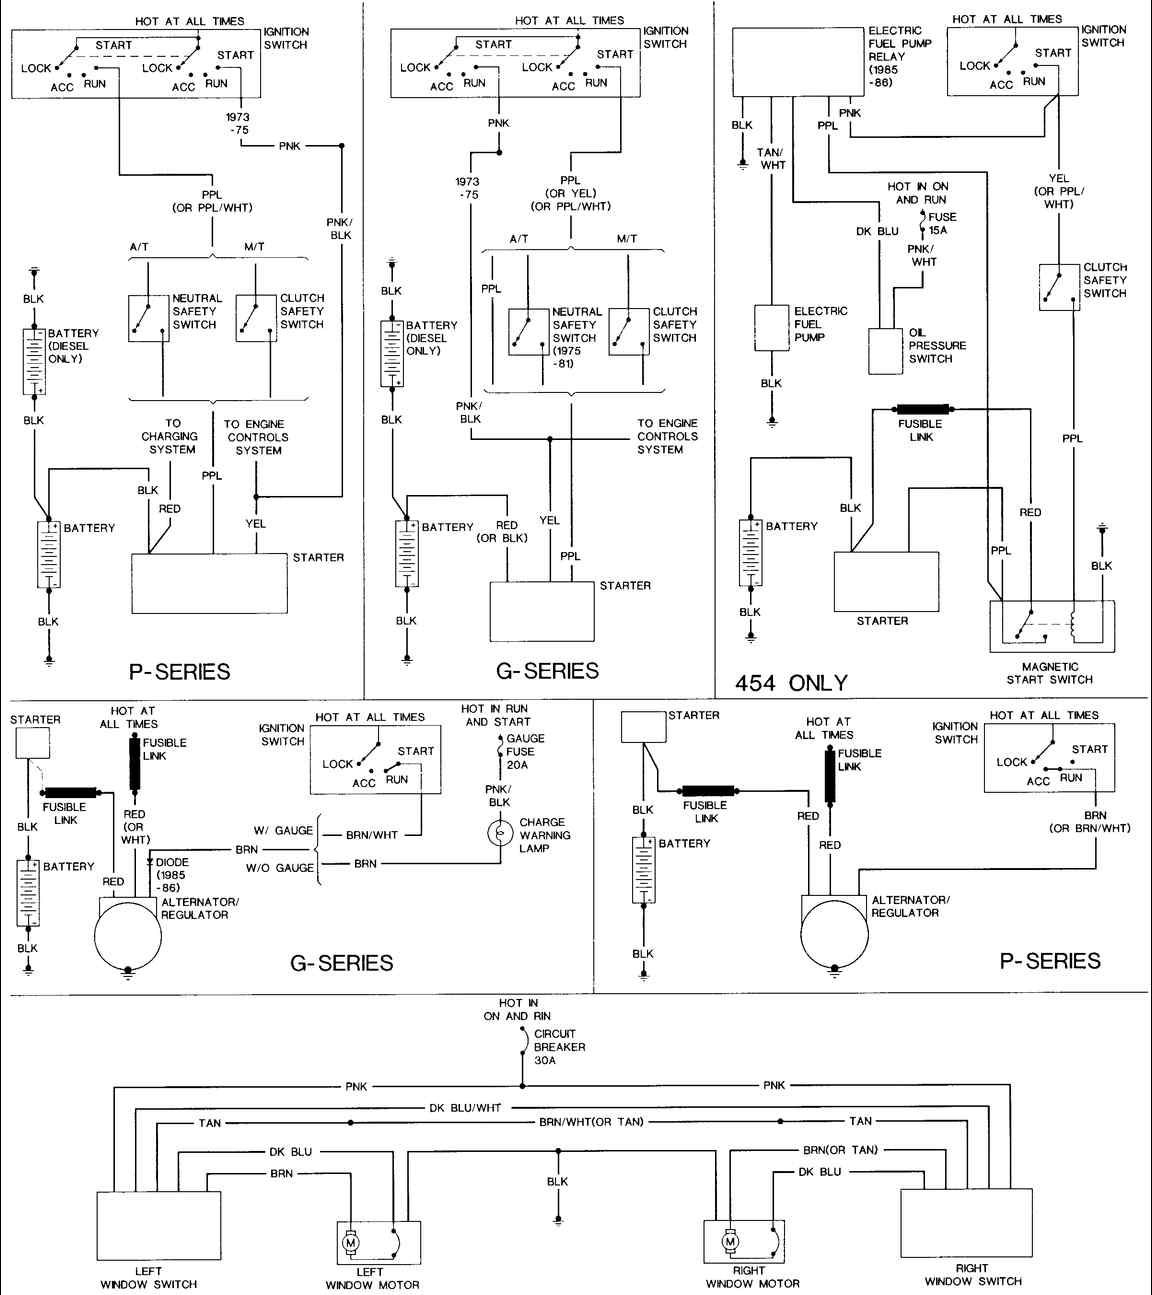 chevy van wiring diagram wiring diagram database rh brandgogo co GE T12 Ballast Wiring Diagram Fluorescent Ballast Wiring Diagram